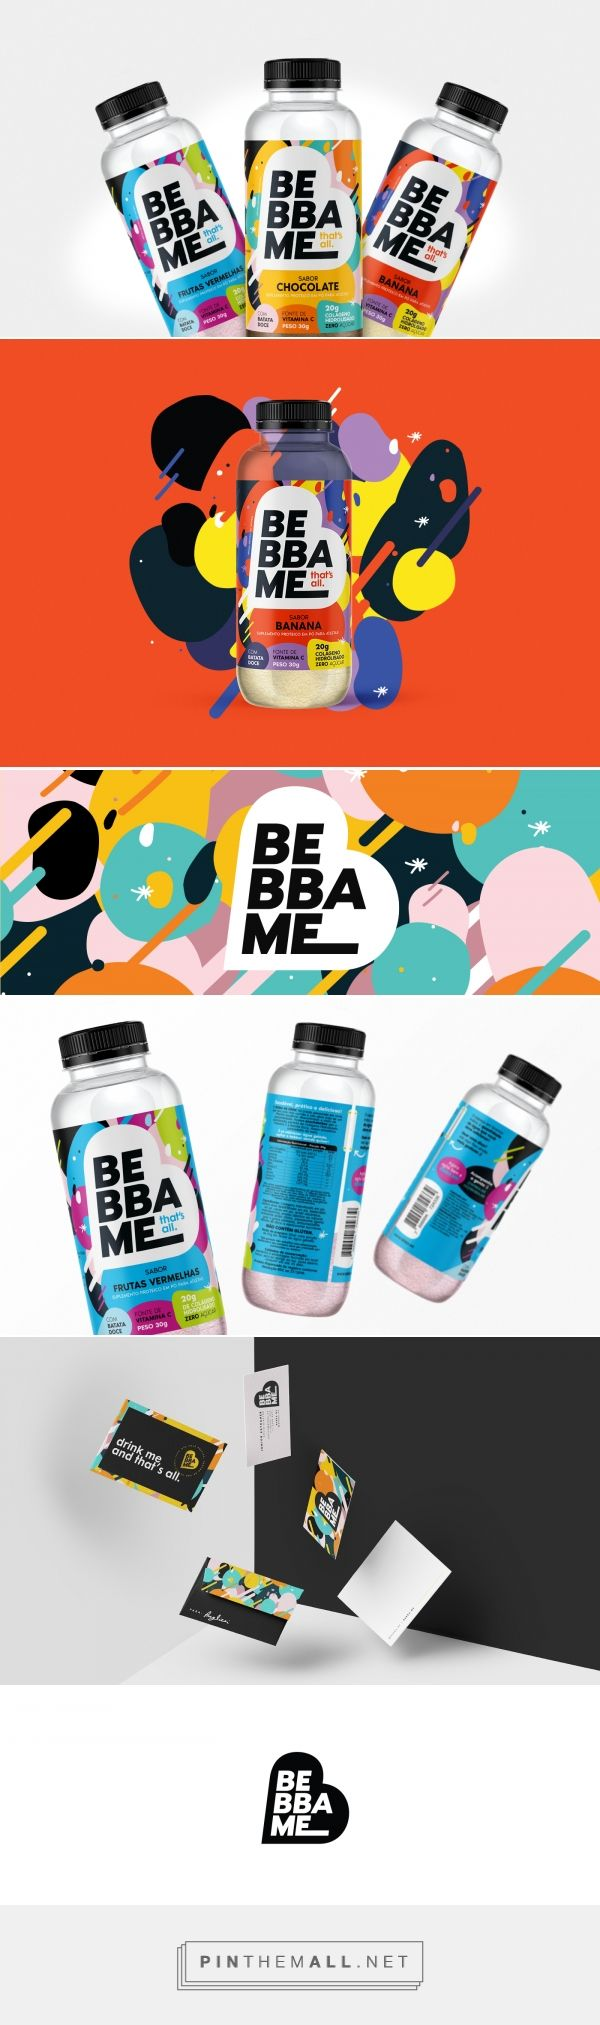 BEBBA ME beverage packaging design by ChiapaDesign - http://www.packagingoftheworld.com/2017/12/bebba-me.html